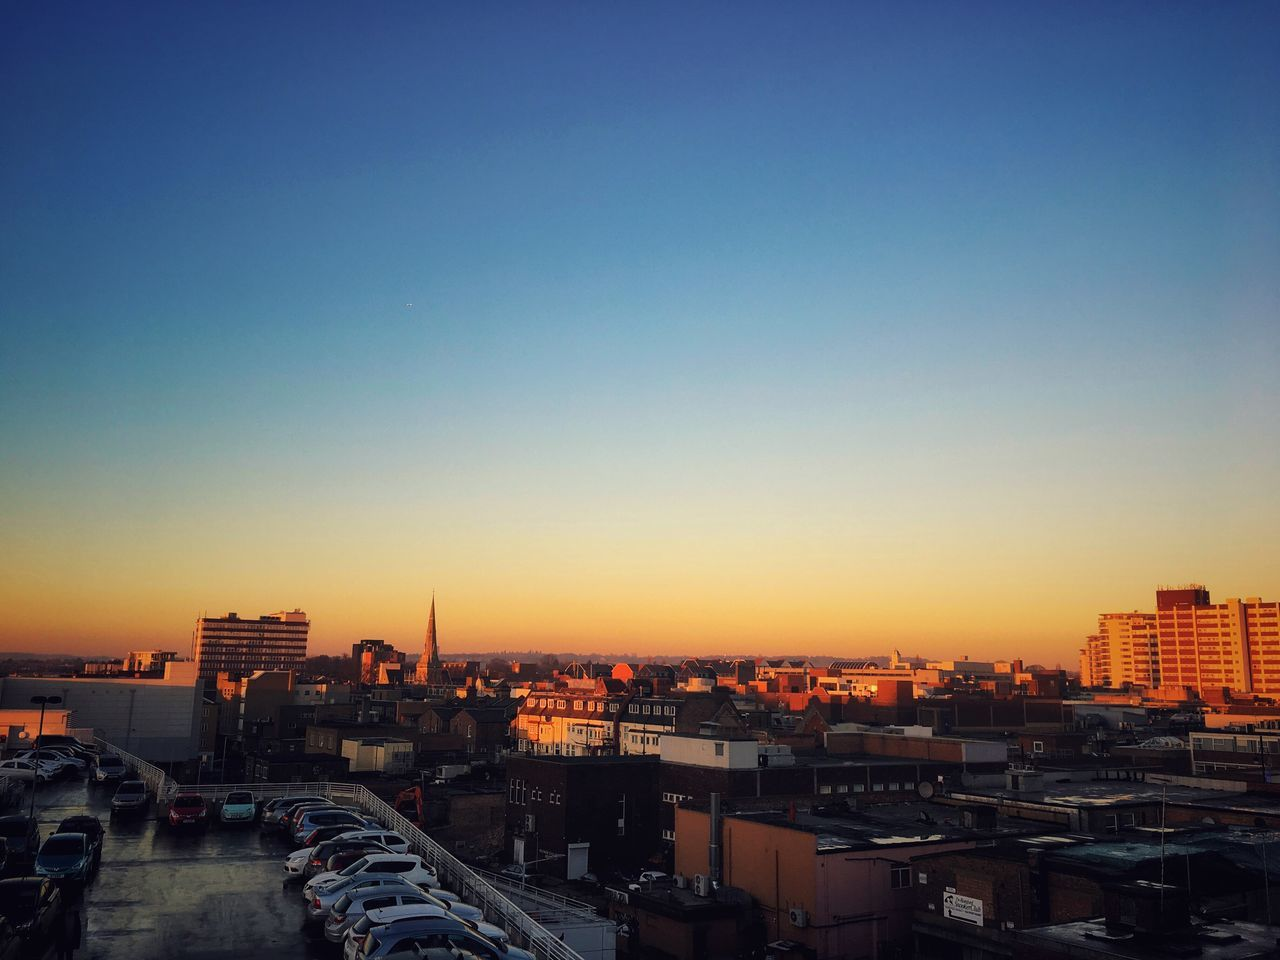 City Building Exterior Clear Sky Copy Space Built Structure Architecture Cityscape Sunset Residential Building No People Outdoors Day